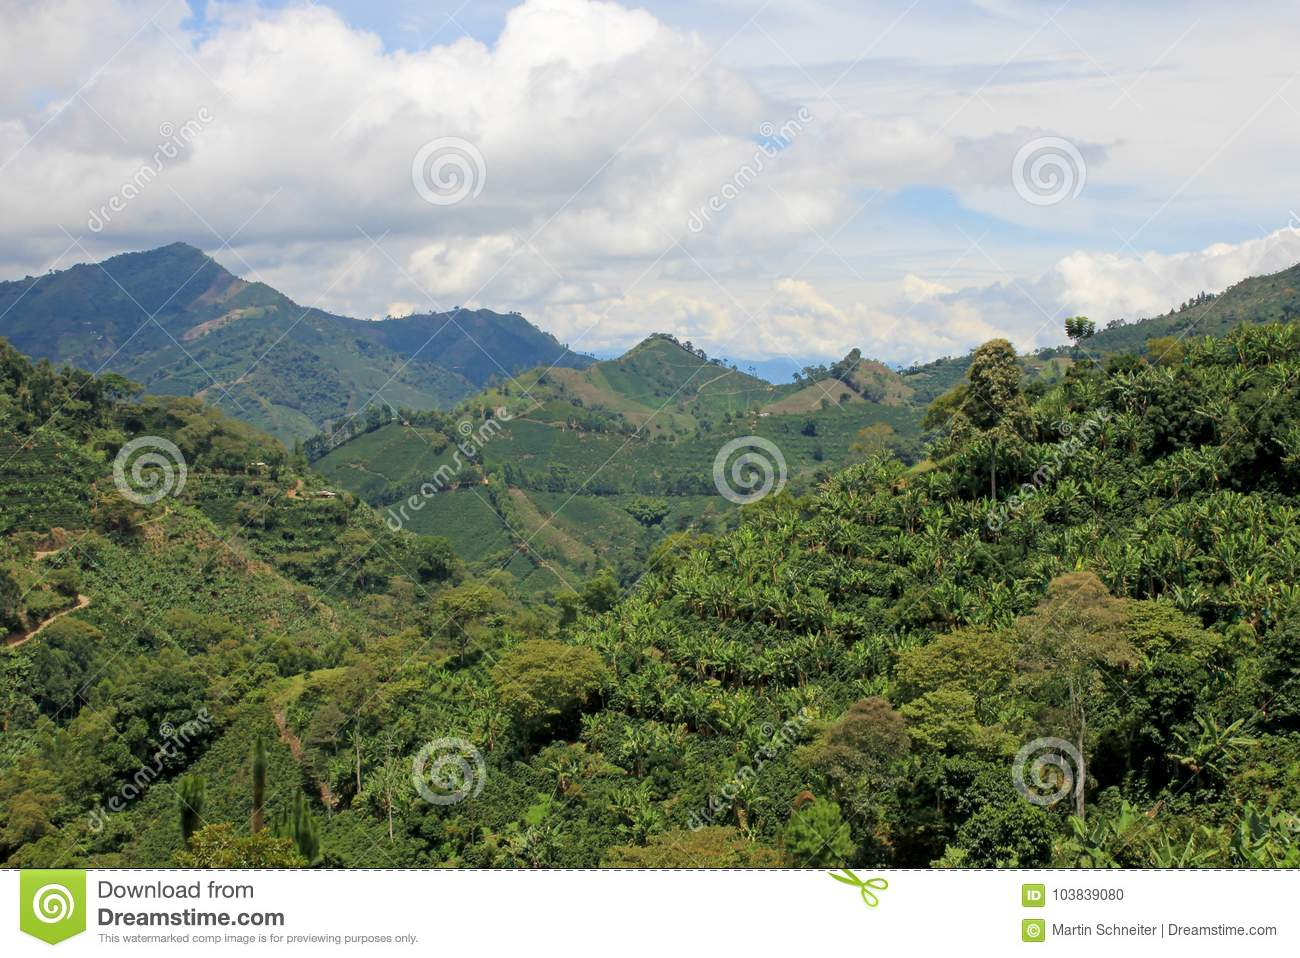 Landscape of coffee and banana plants in the coffee growing region near El Jardin, Antioquia, Colombia